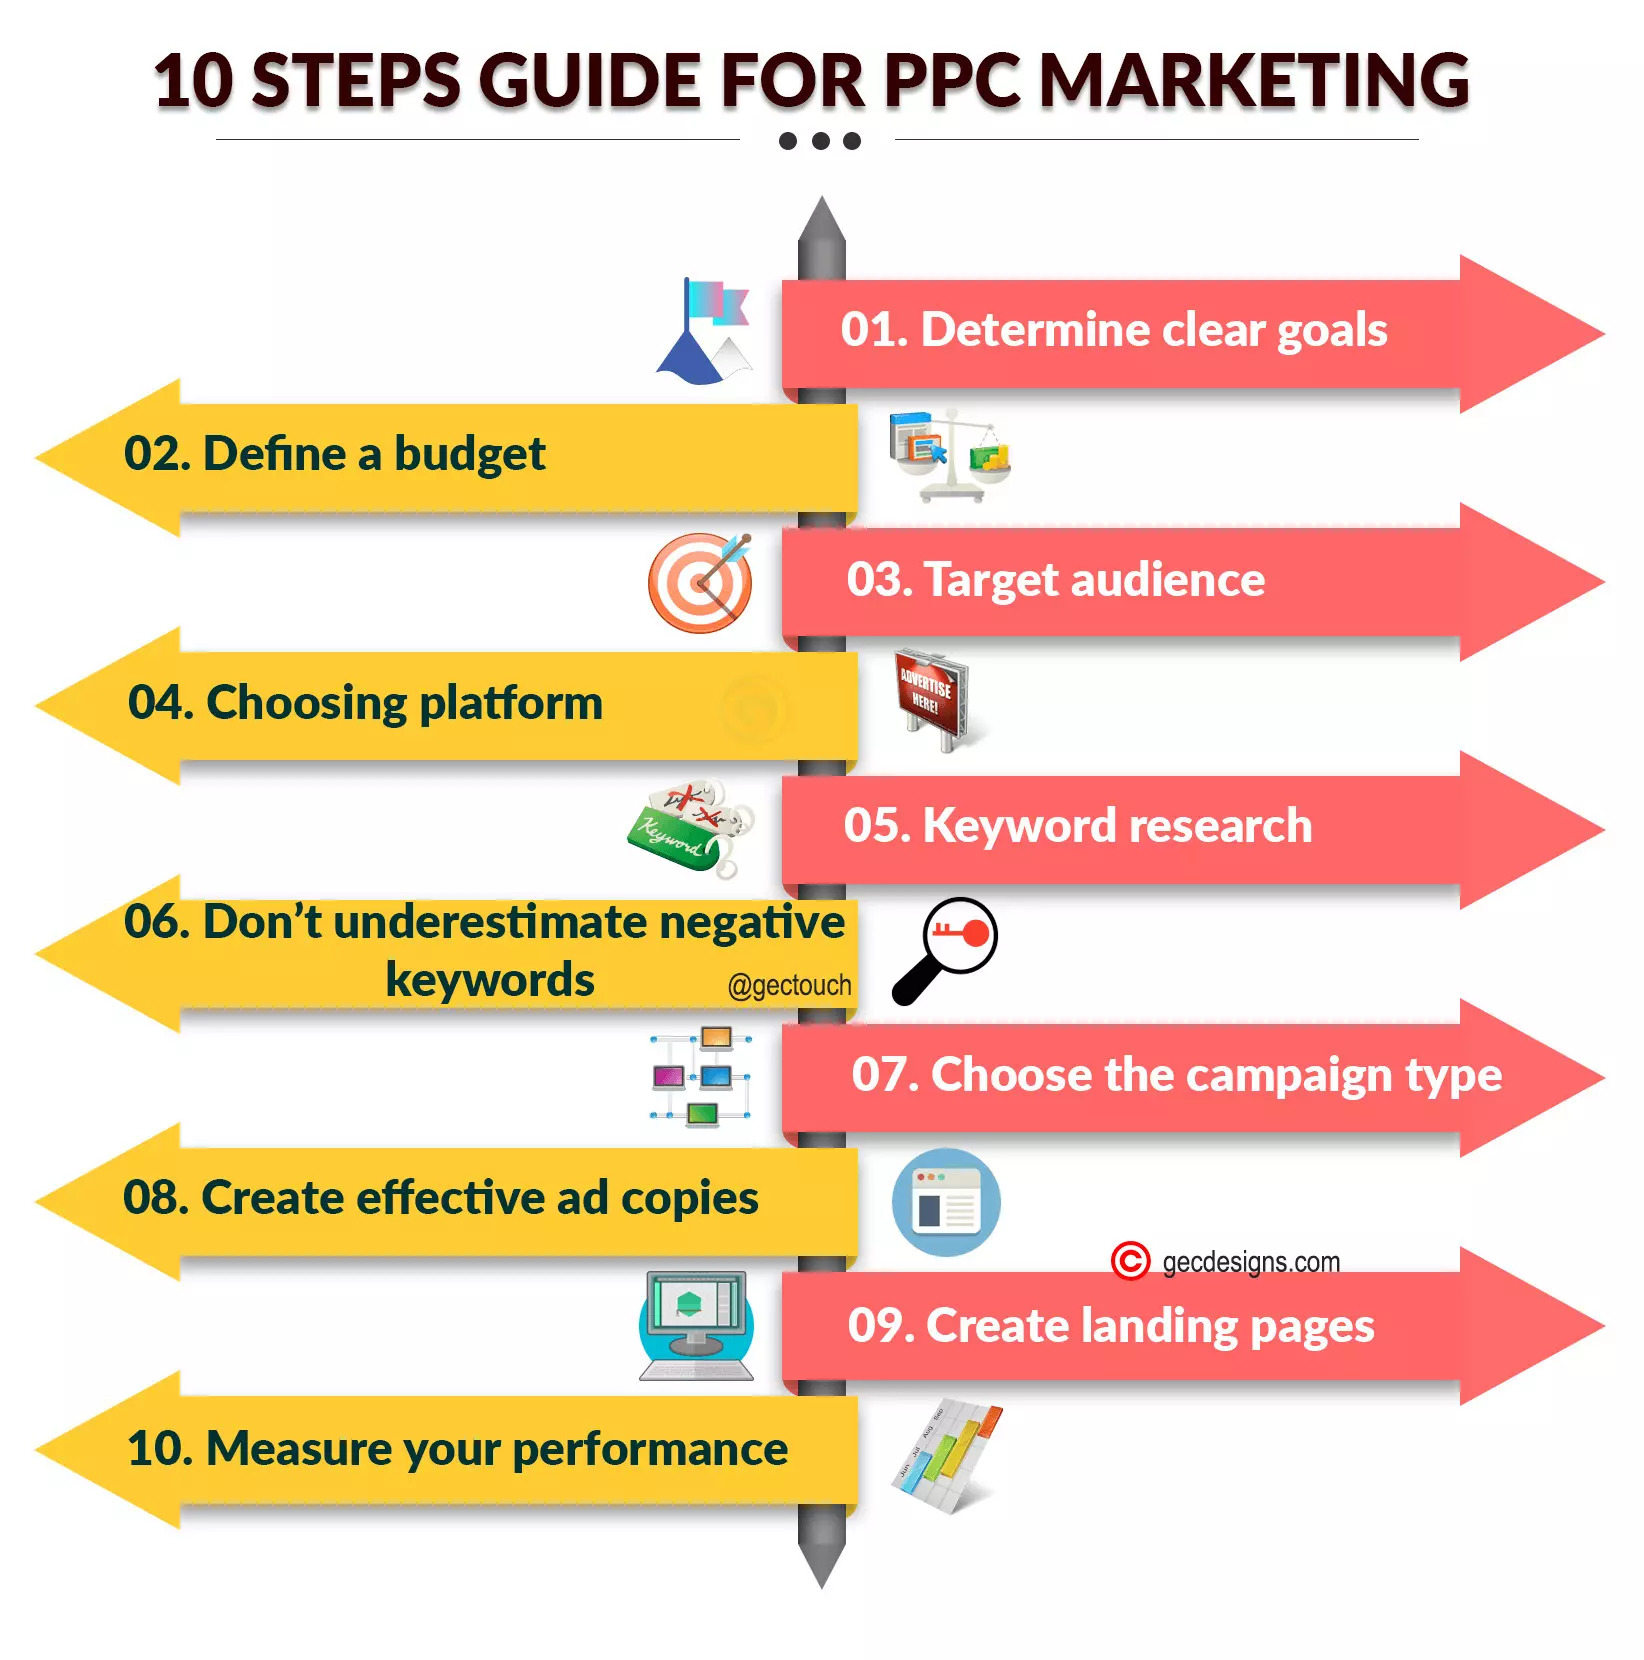 10 Step PPC Guide: Courtesy of GEC Designs